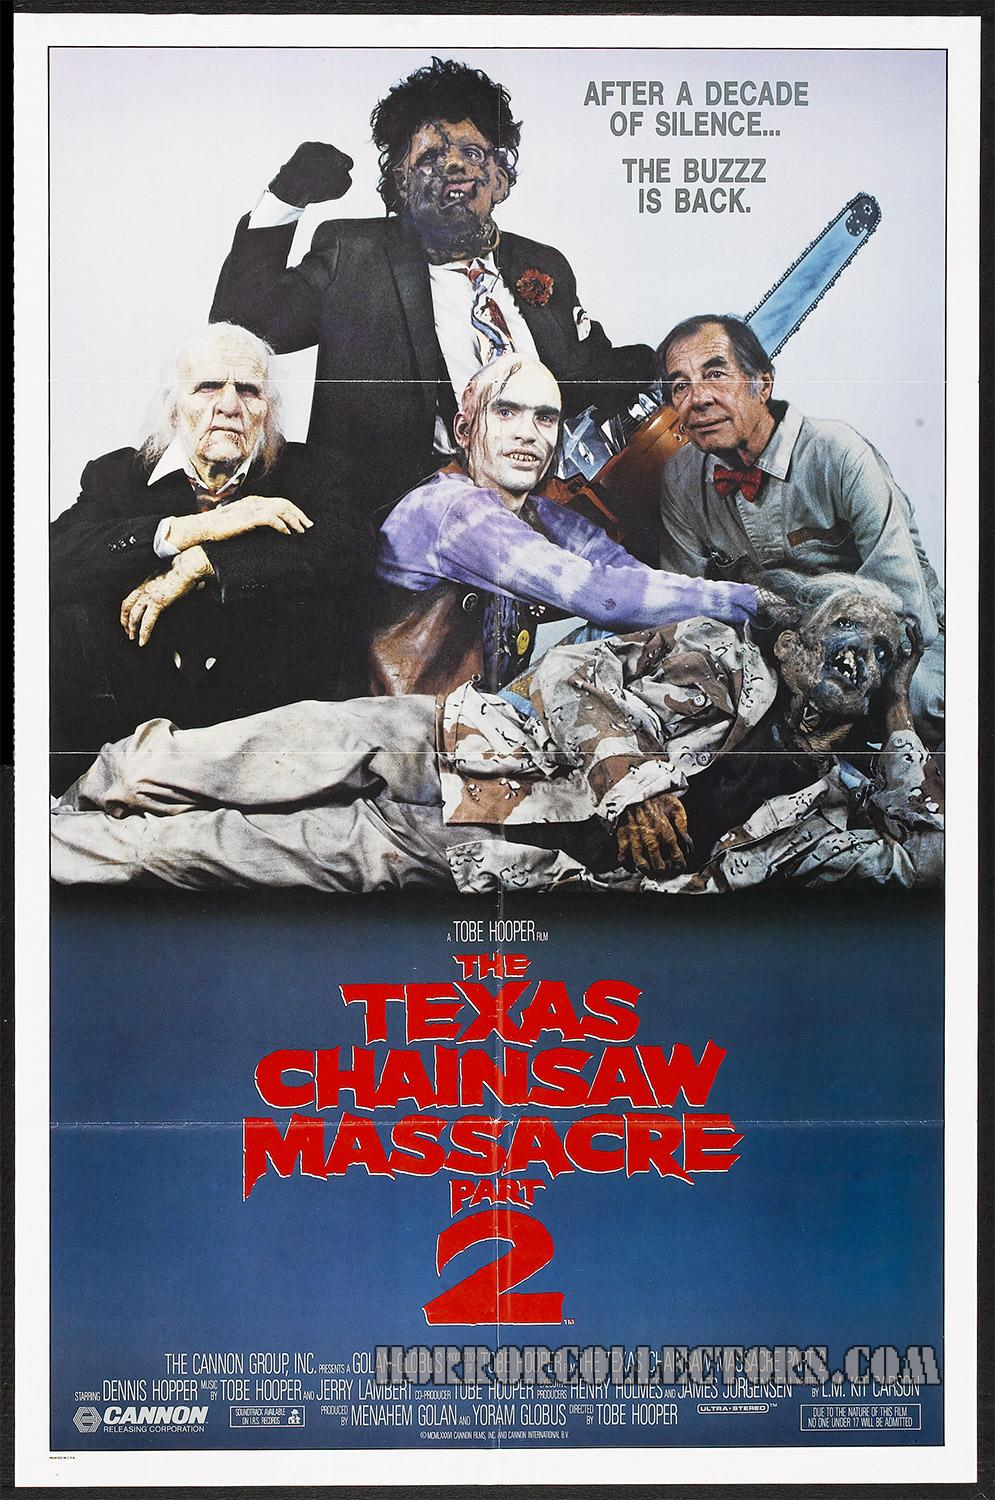 Texas Chainsaw Massacre US One Sheet Poster Style A